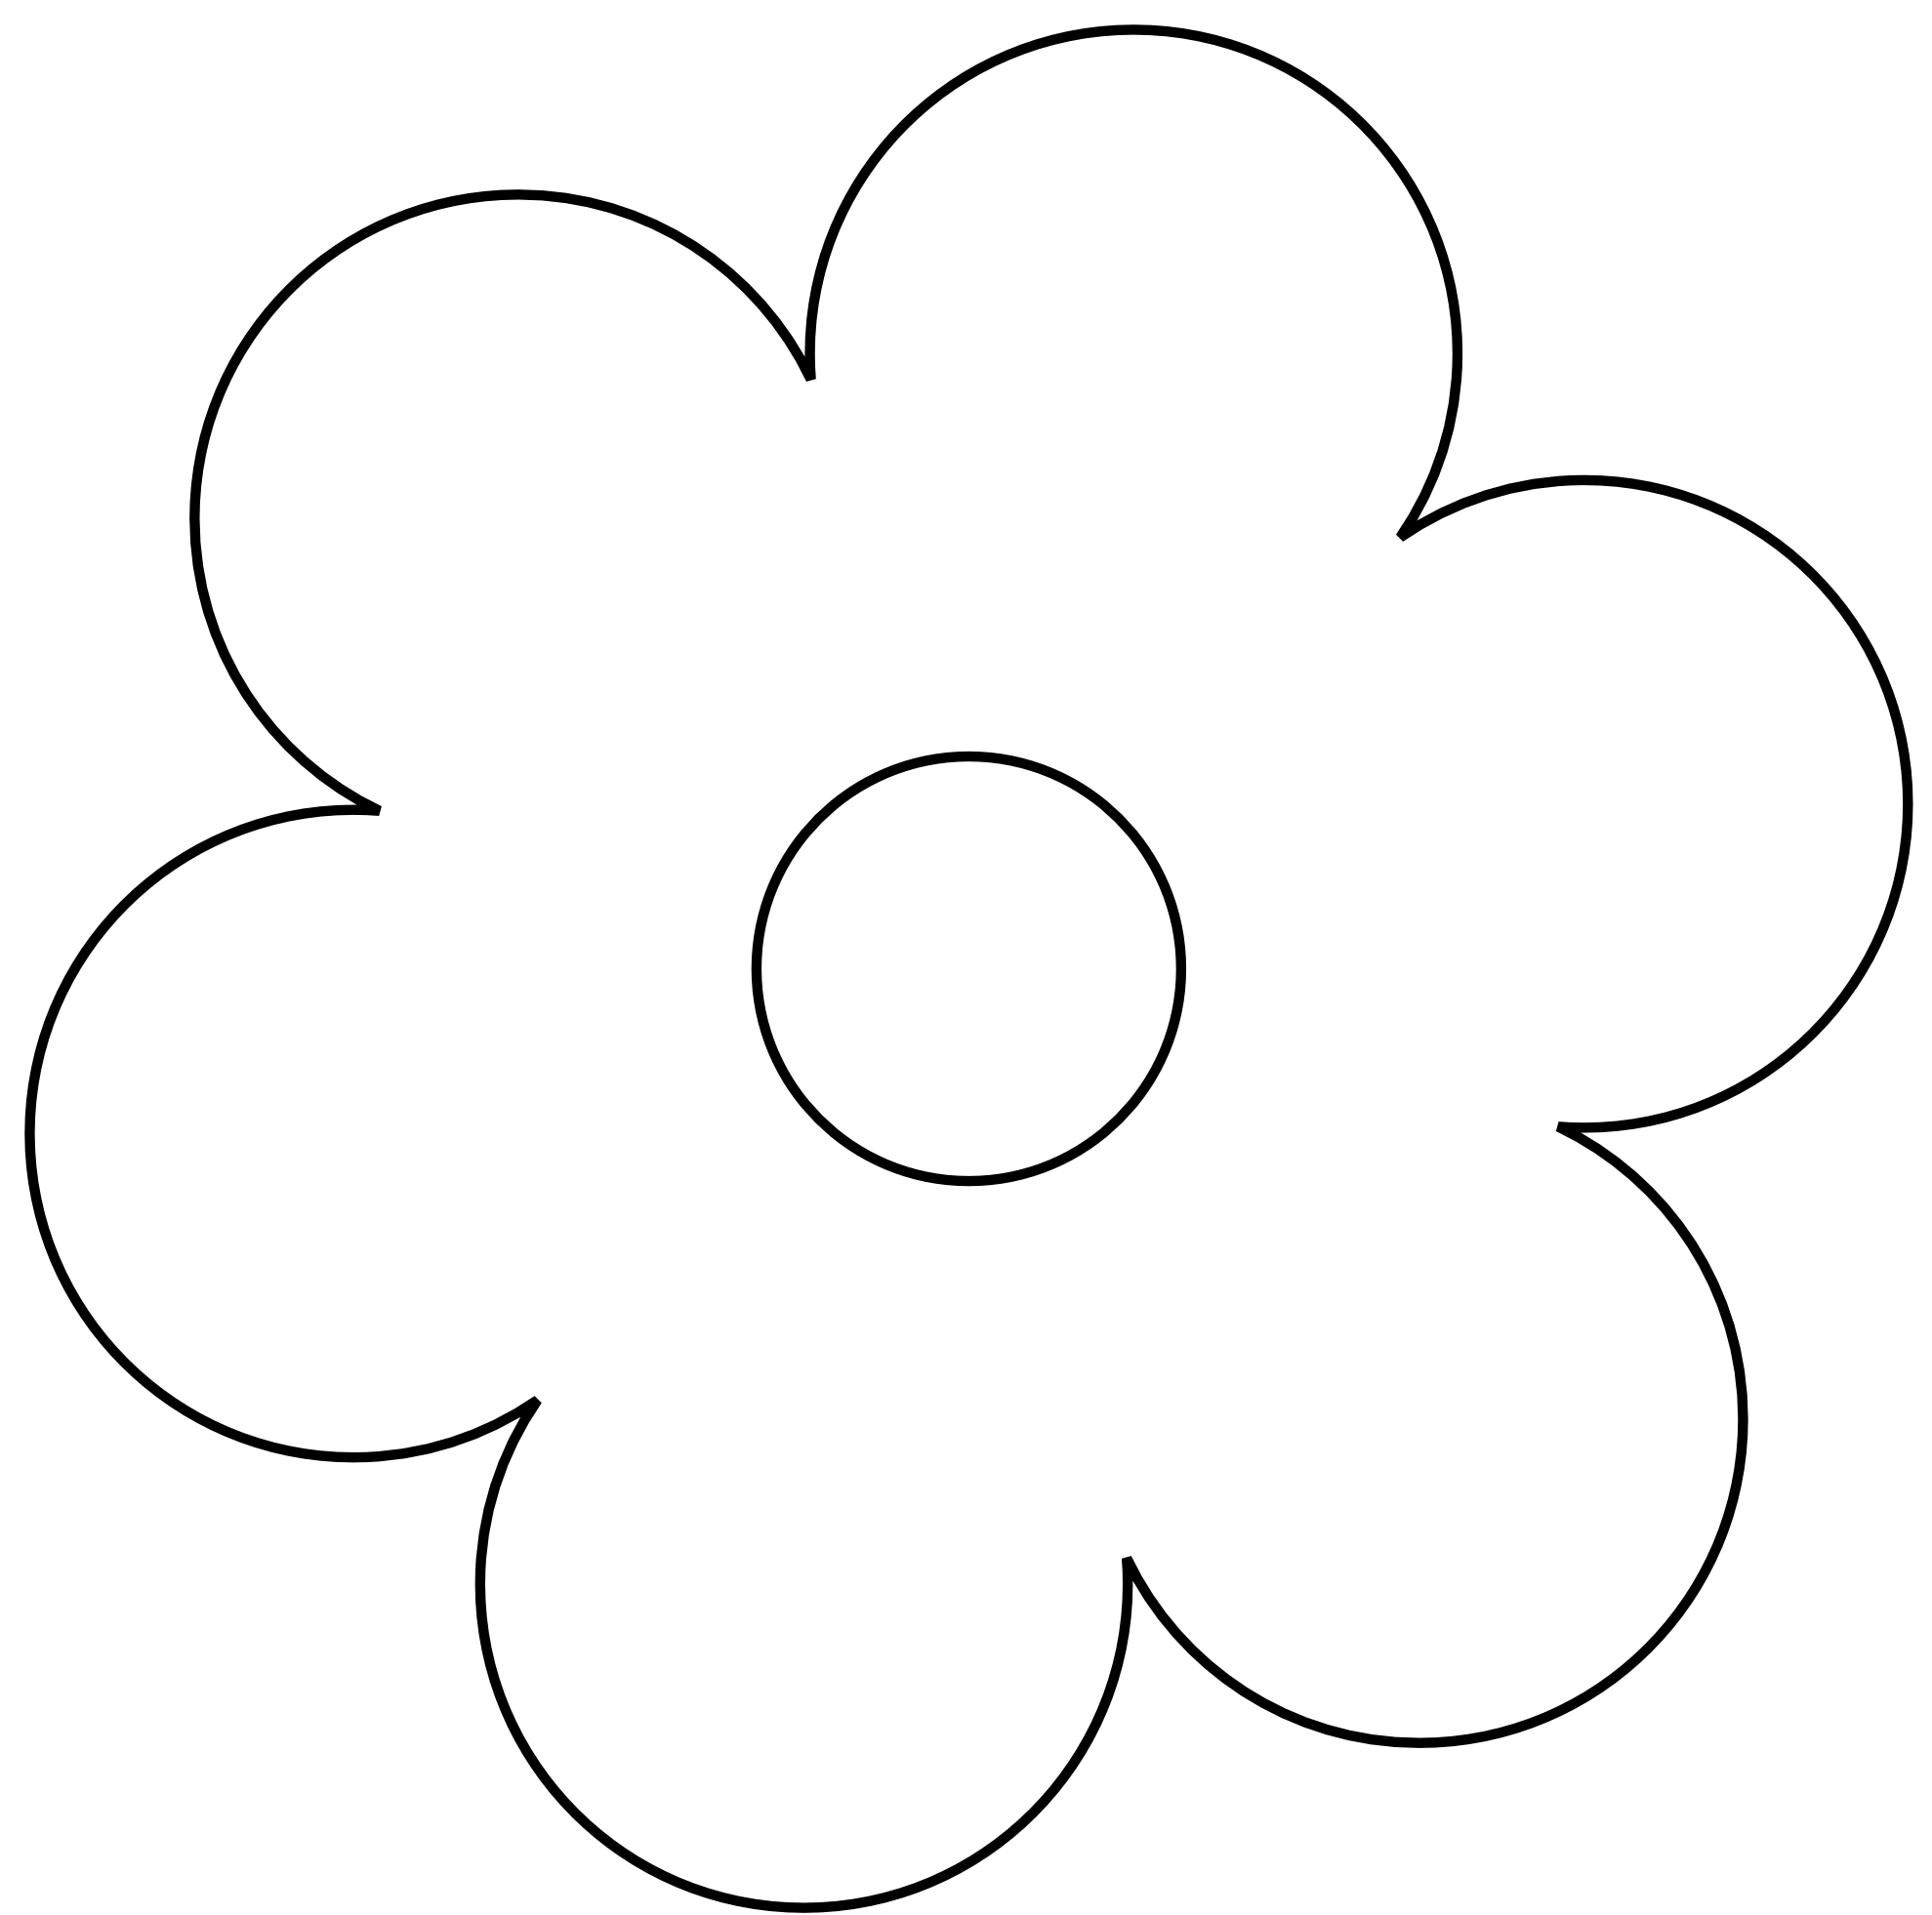 Flower Art Black And White Flowers For gt Black And White